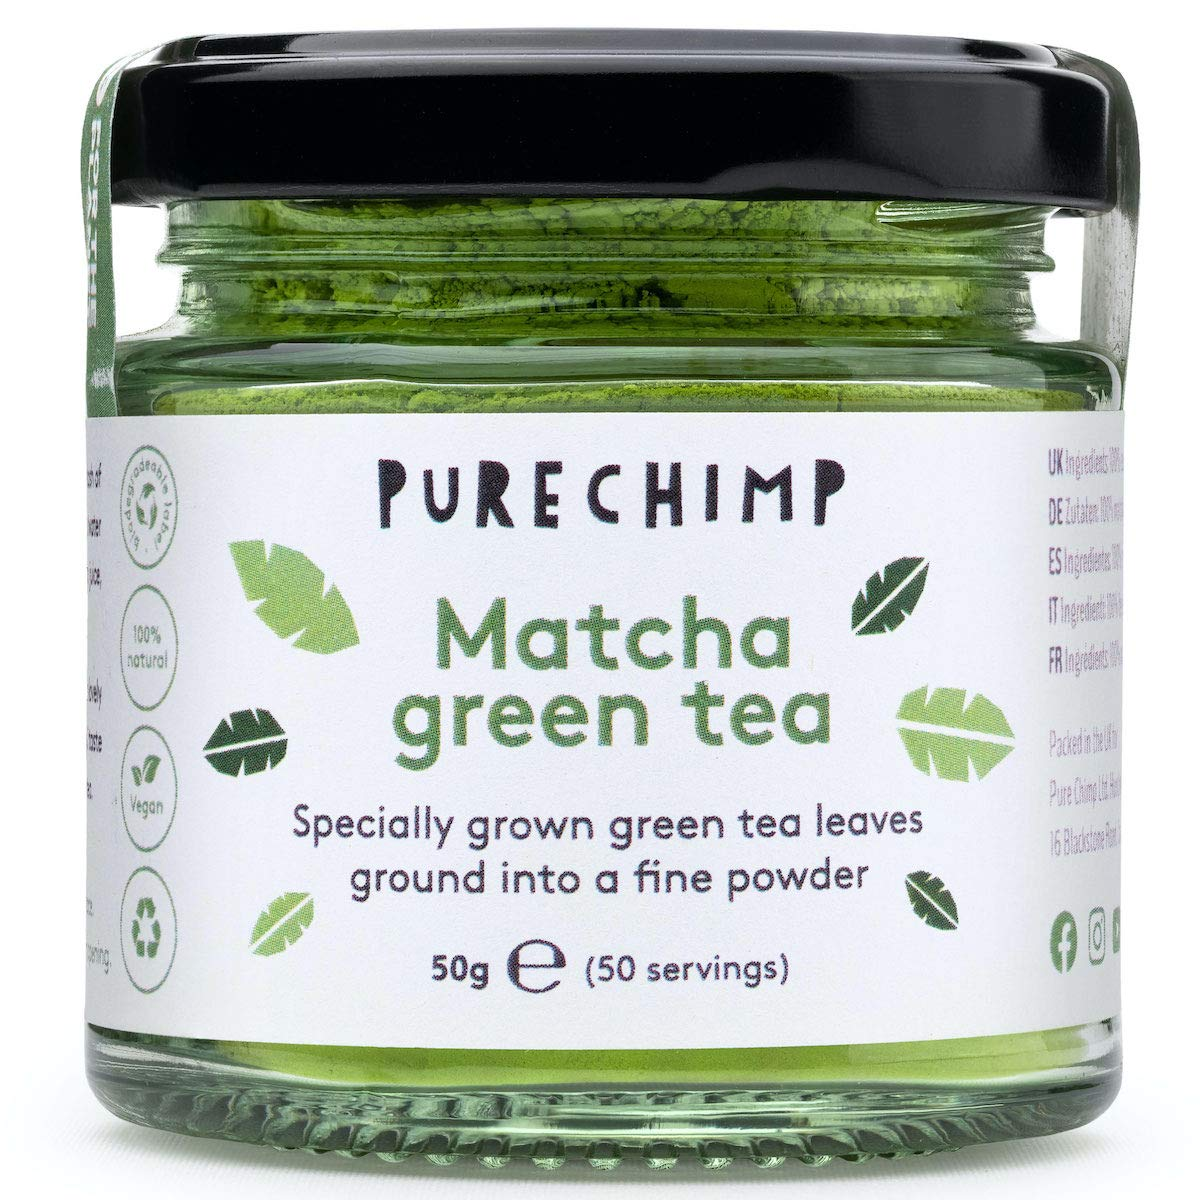 PureChimp Ceremonial Grade Matcha Green Tea Powder